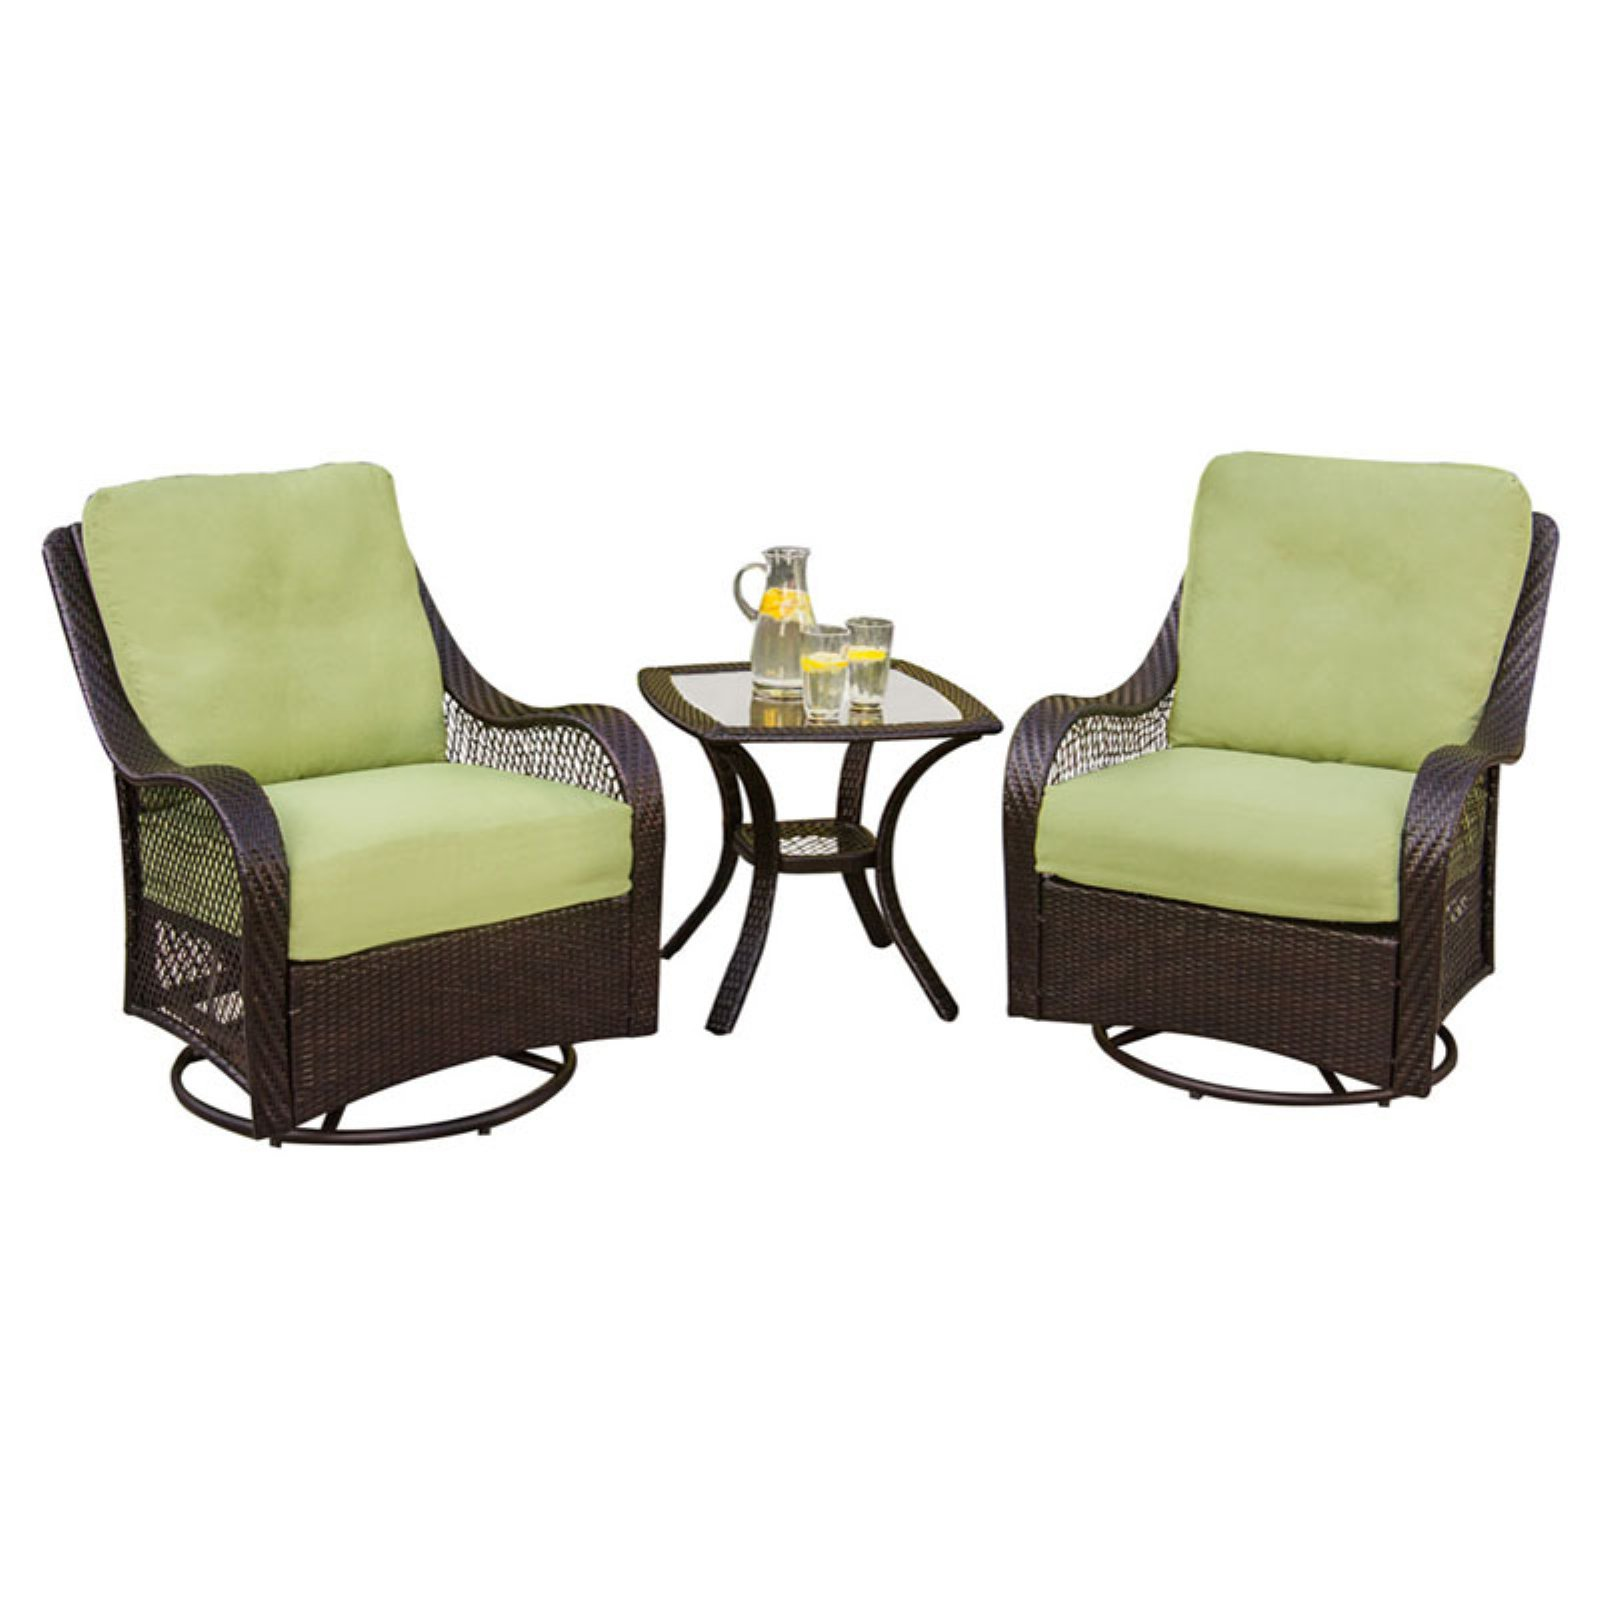 Hanover Orleans 3-Piece Outdoor Lounging Set